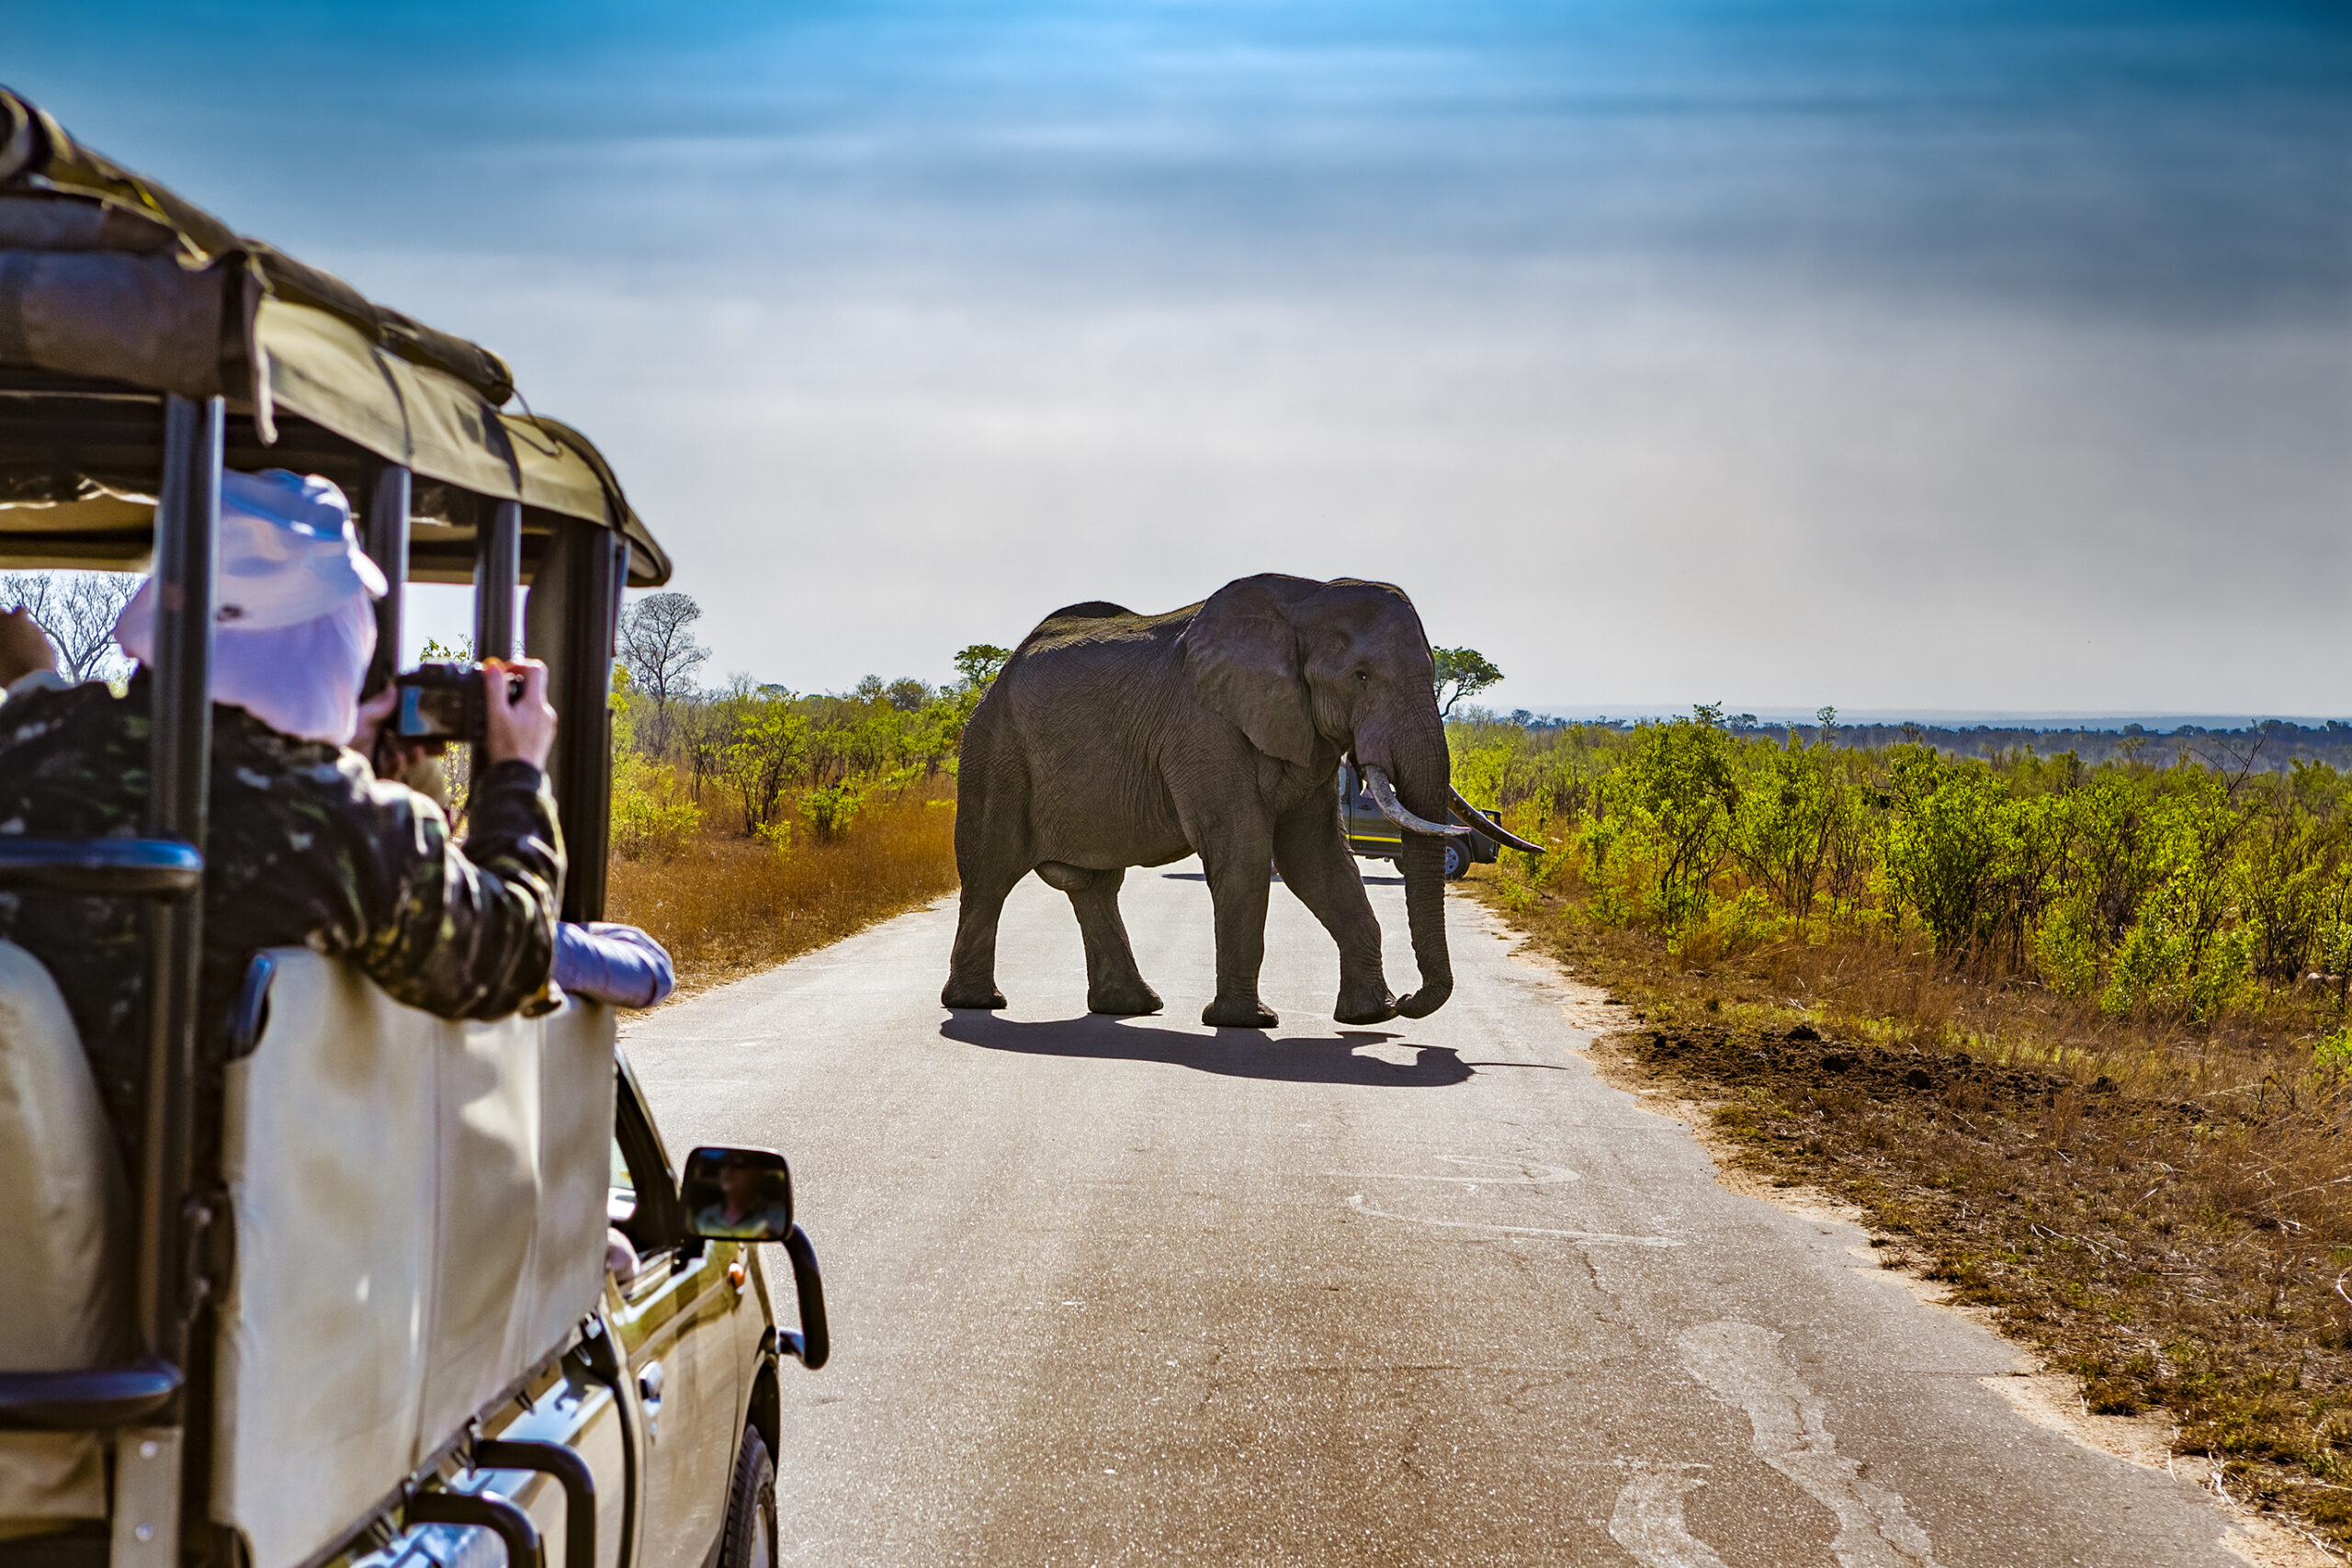 Safari in South Africa - elephant in the road